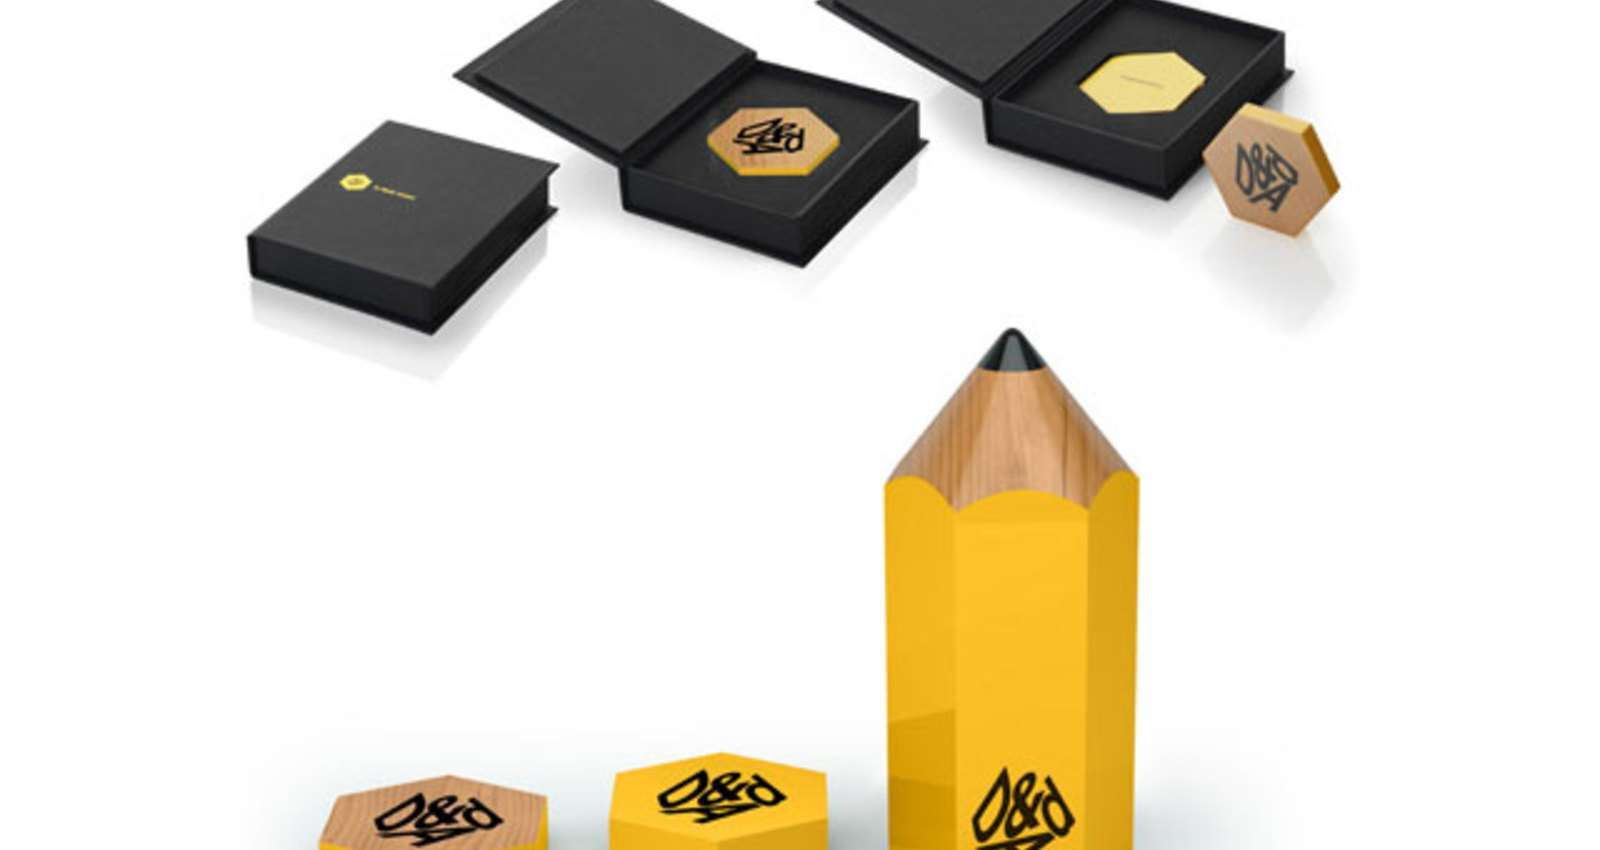 D&AD In Book and Nomination Awards